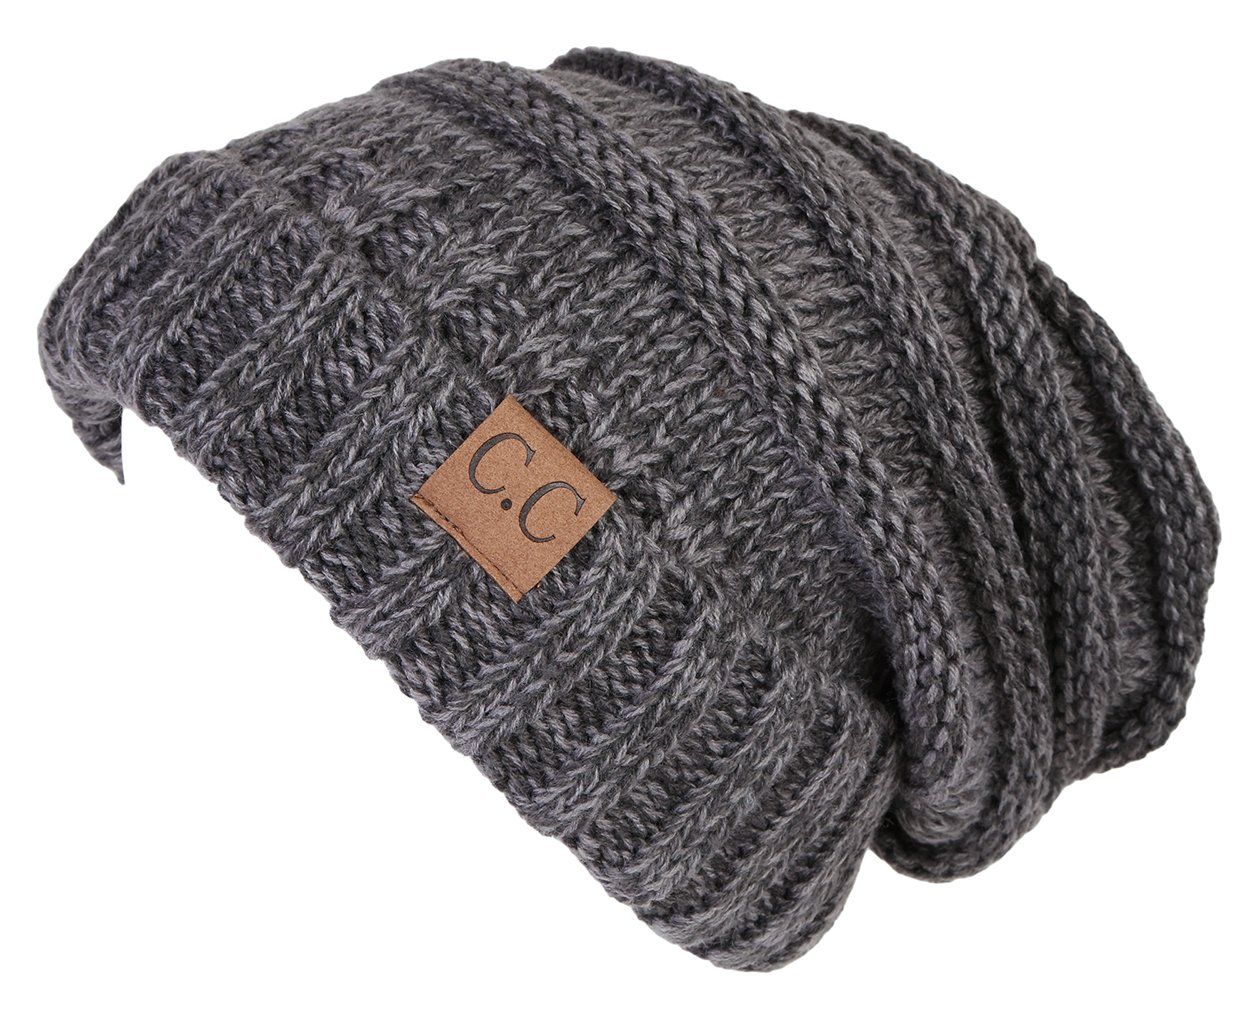 H-6100-6221 Oversized Slouchy Beanie - Graphite Grey